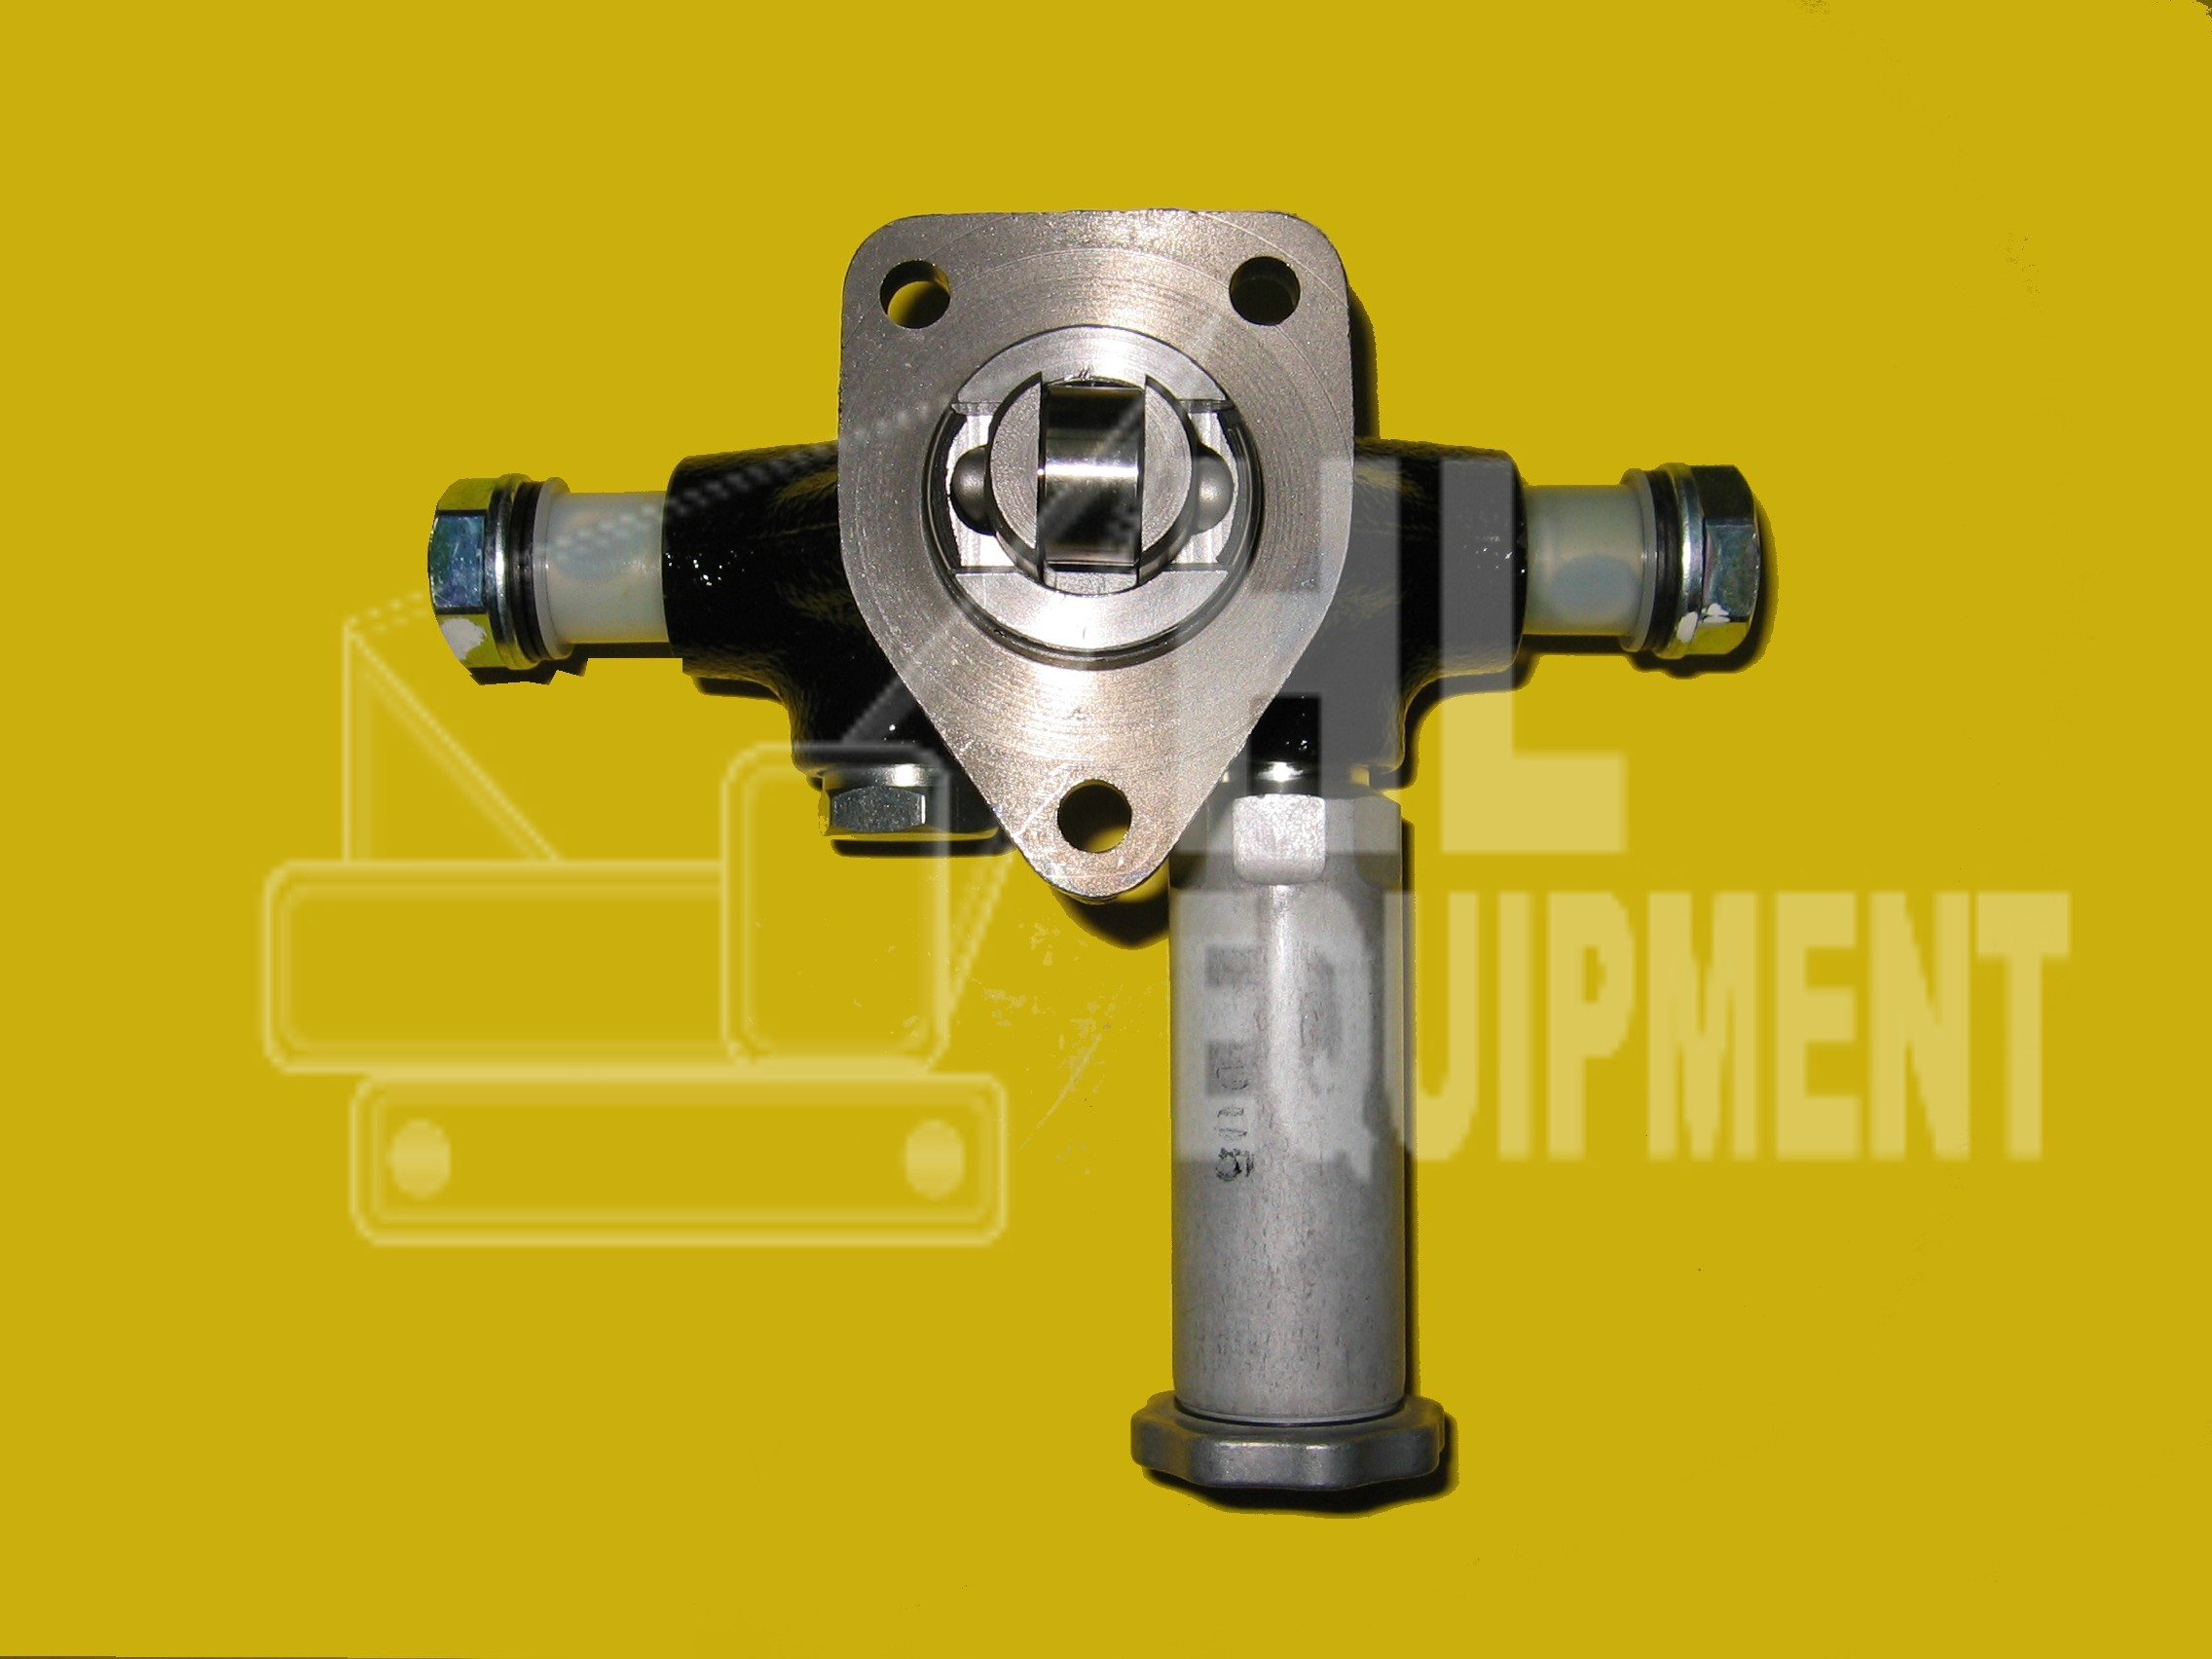 Mitsubishi Fuel Feed Pump